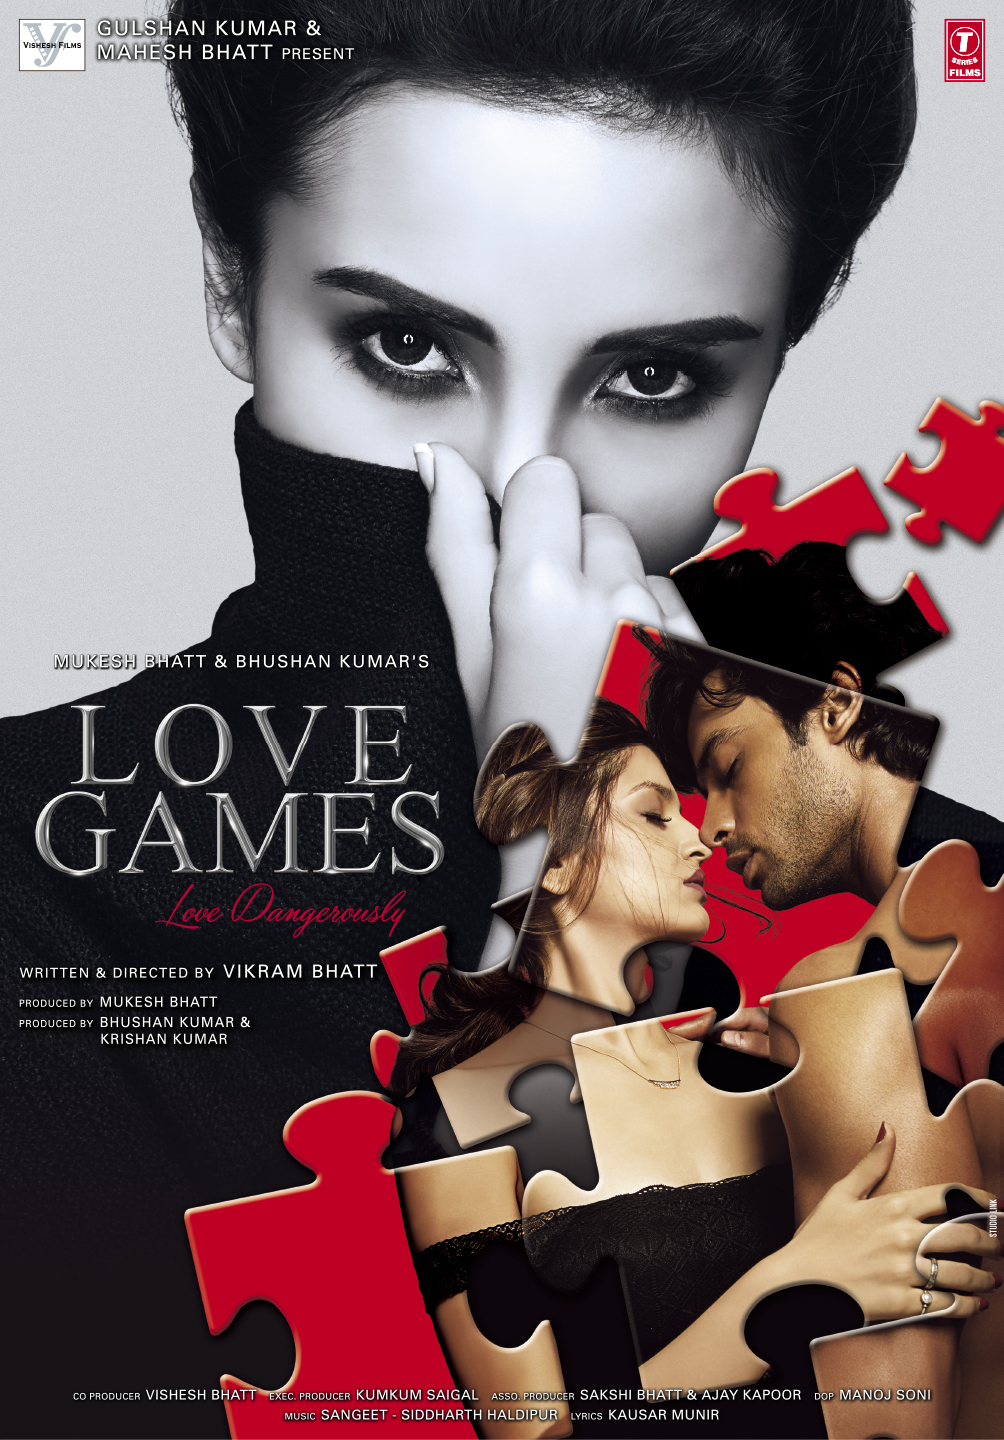 18+ Love Games (2016) Hindi Movie HDRip 300MB Download